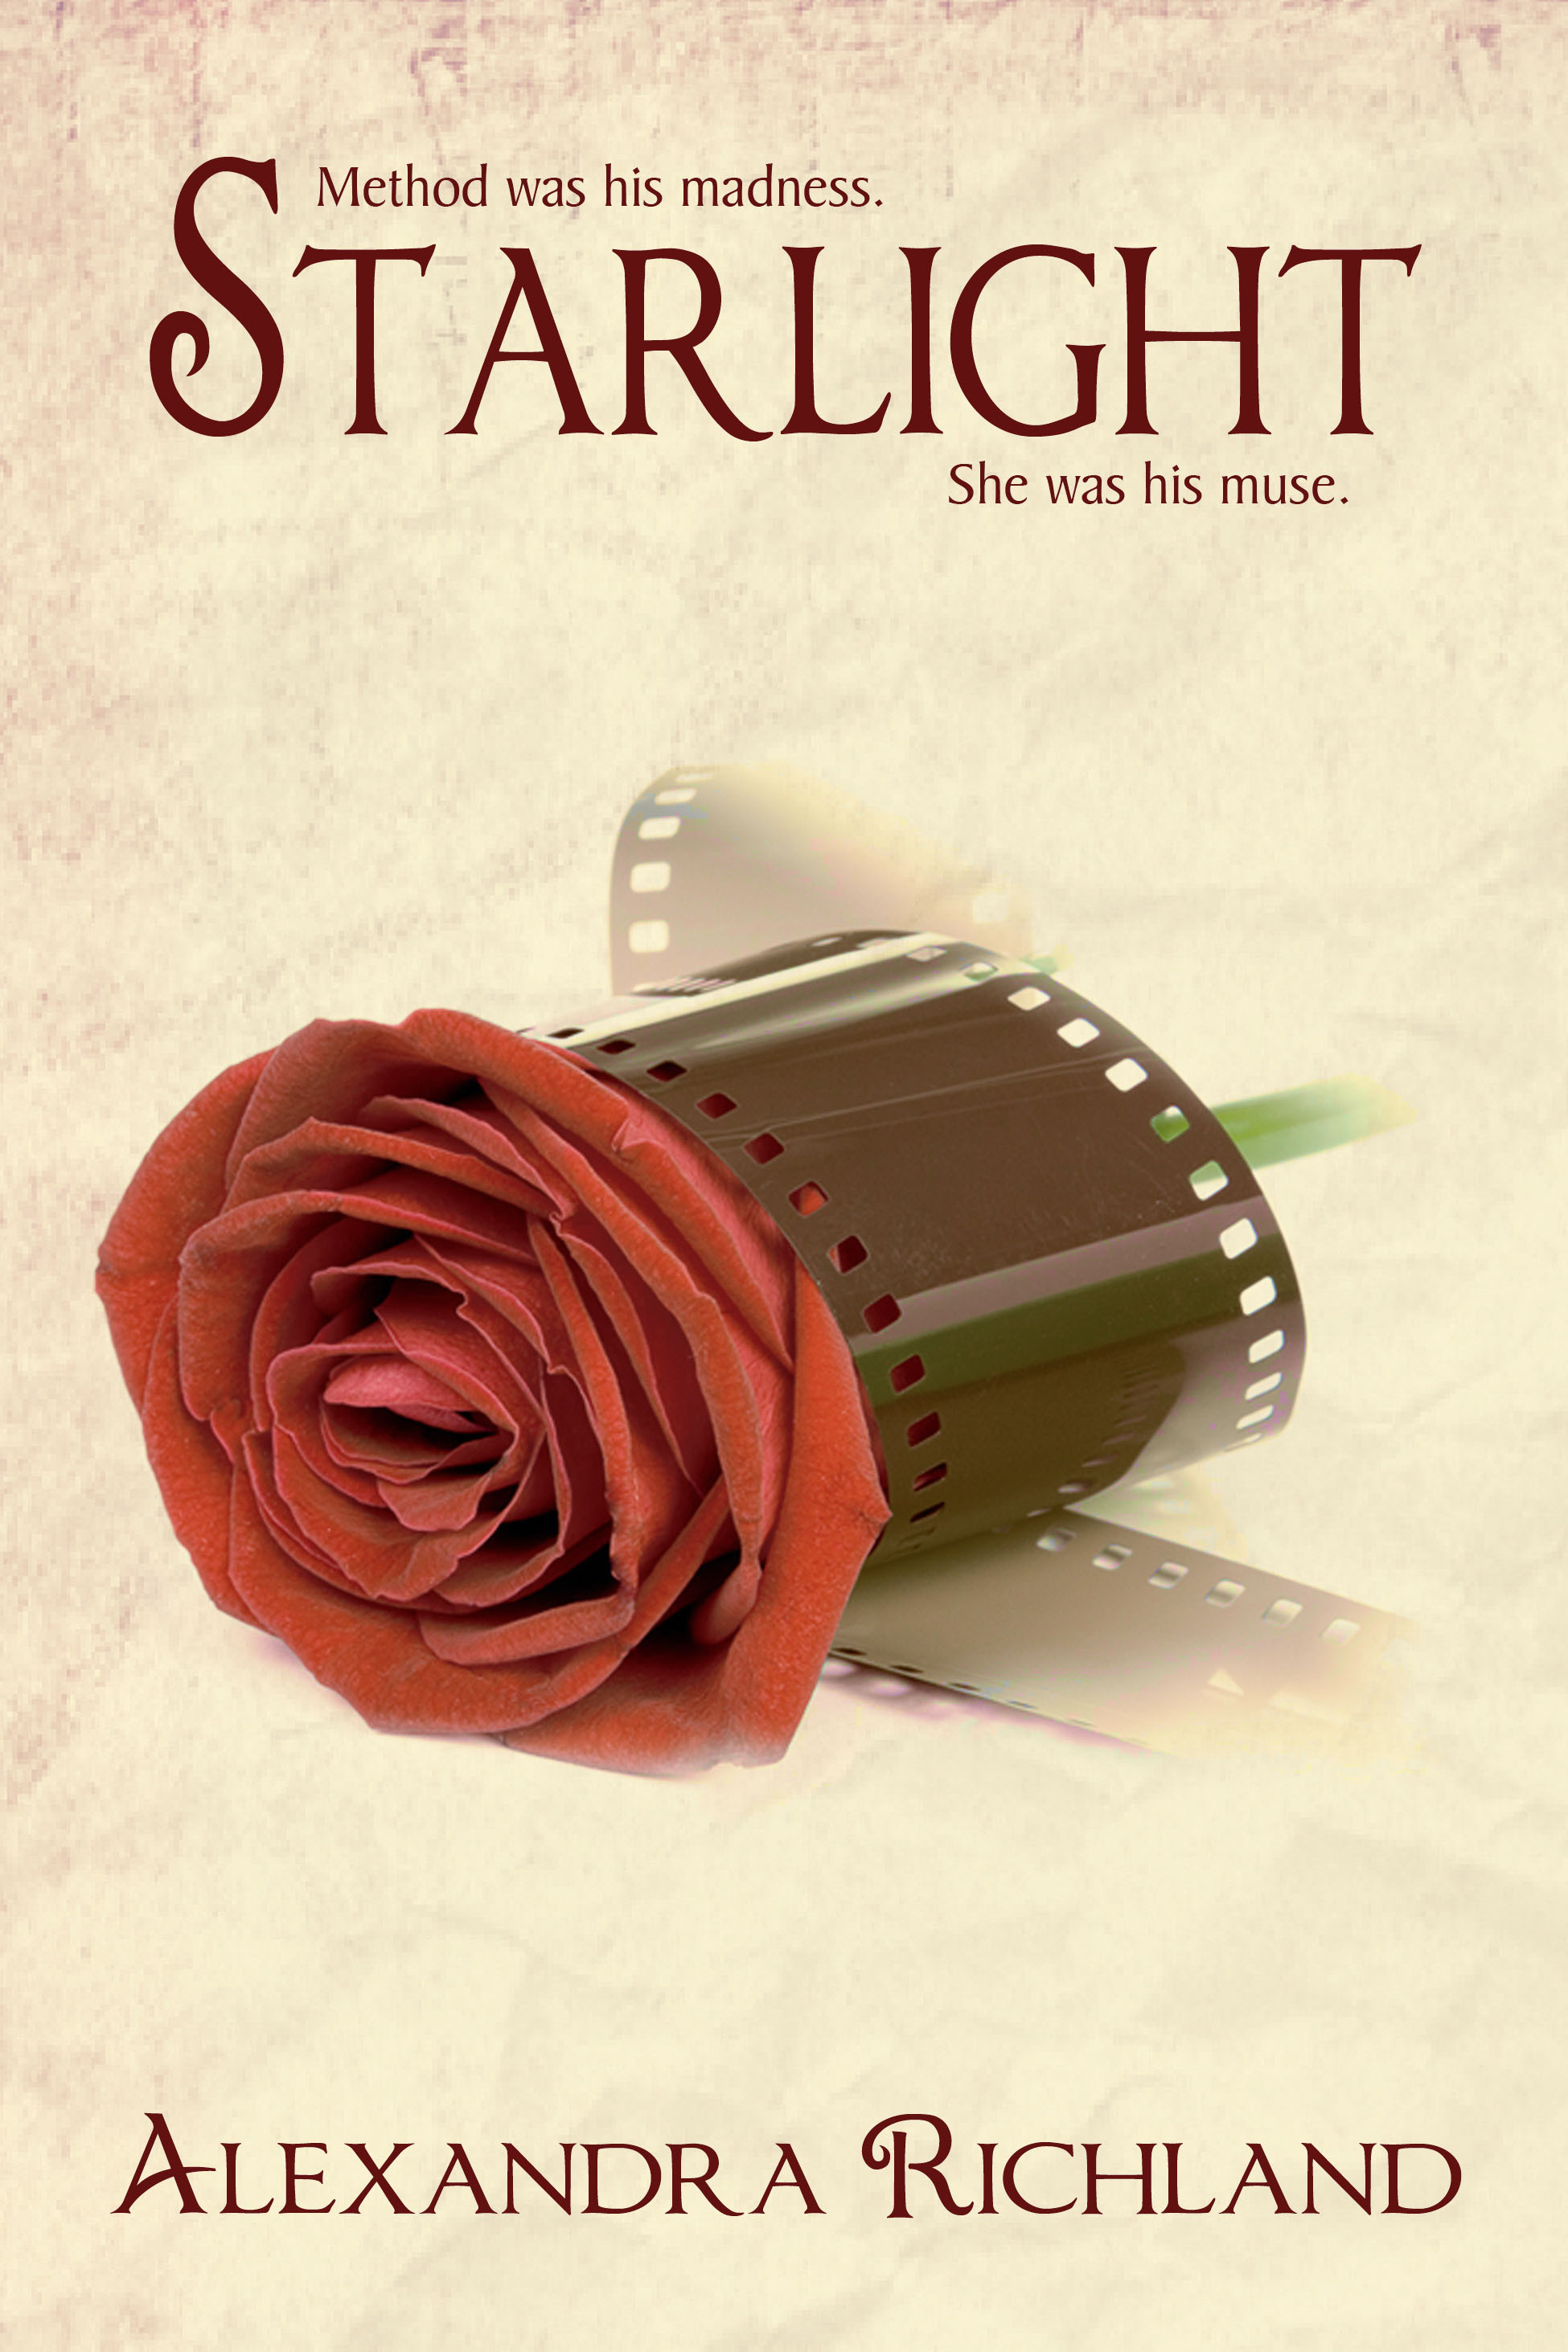 Starlight (Book #1 of The Starlight Trilogy)